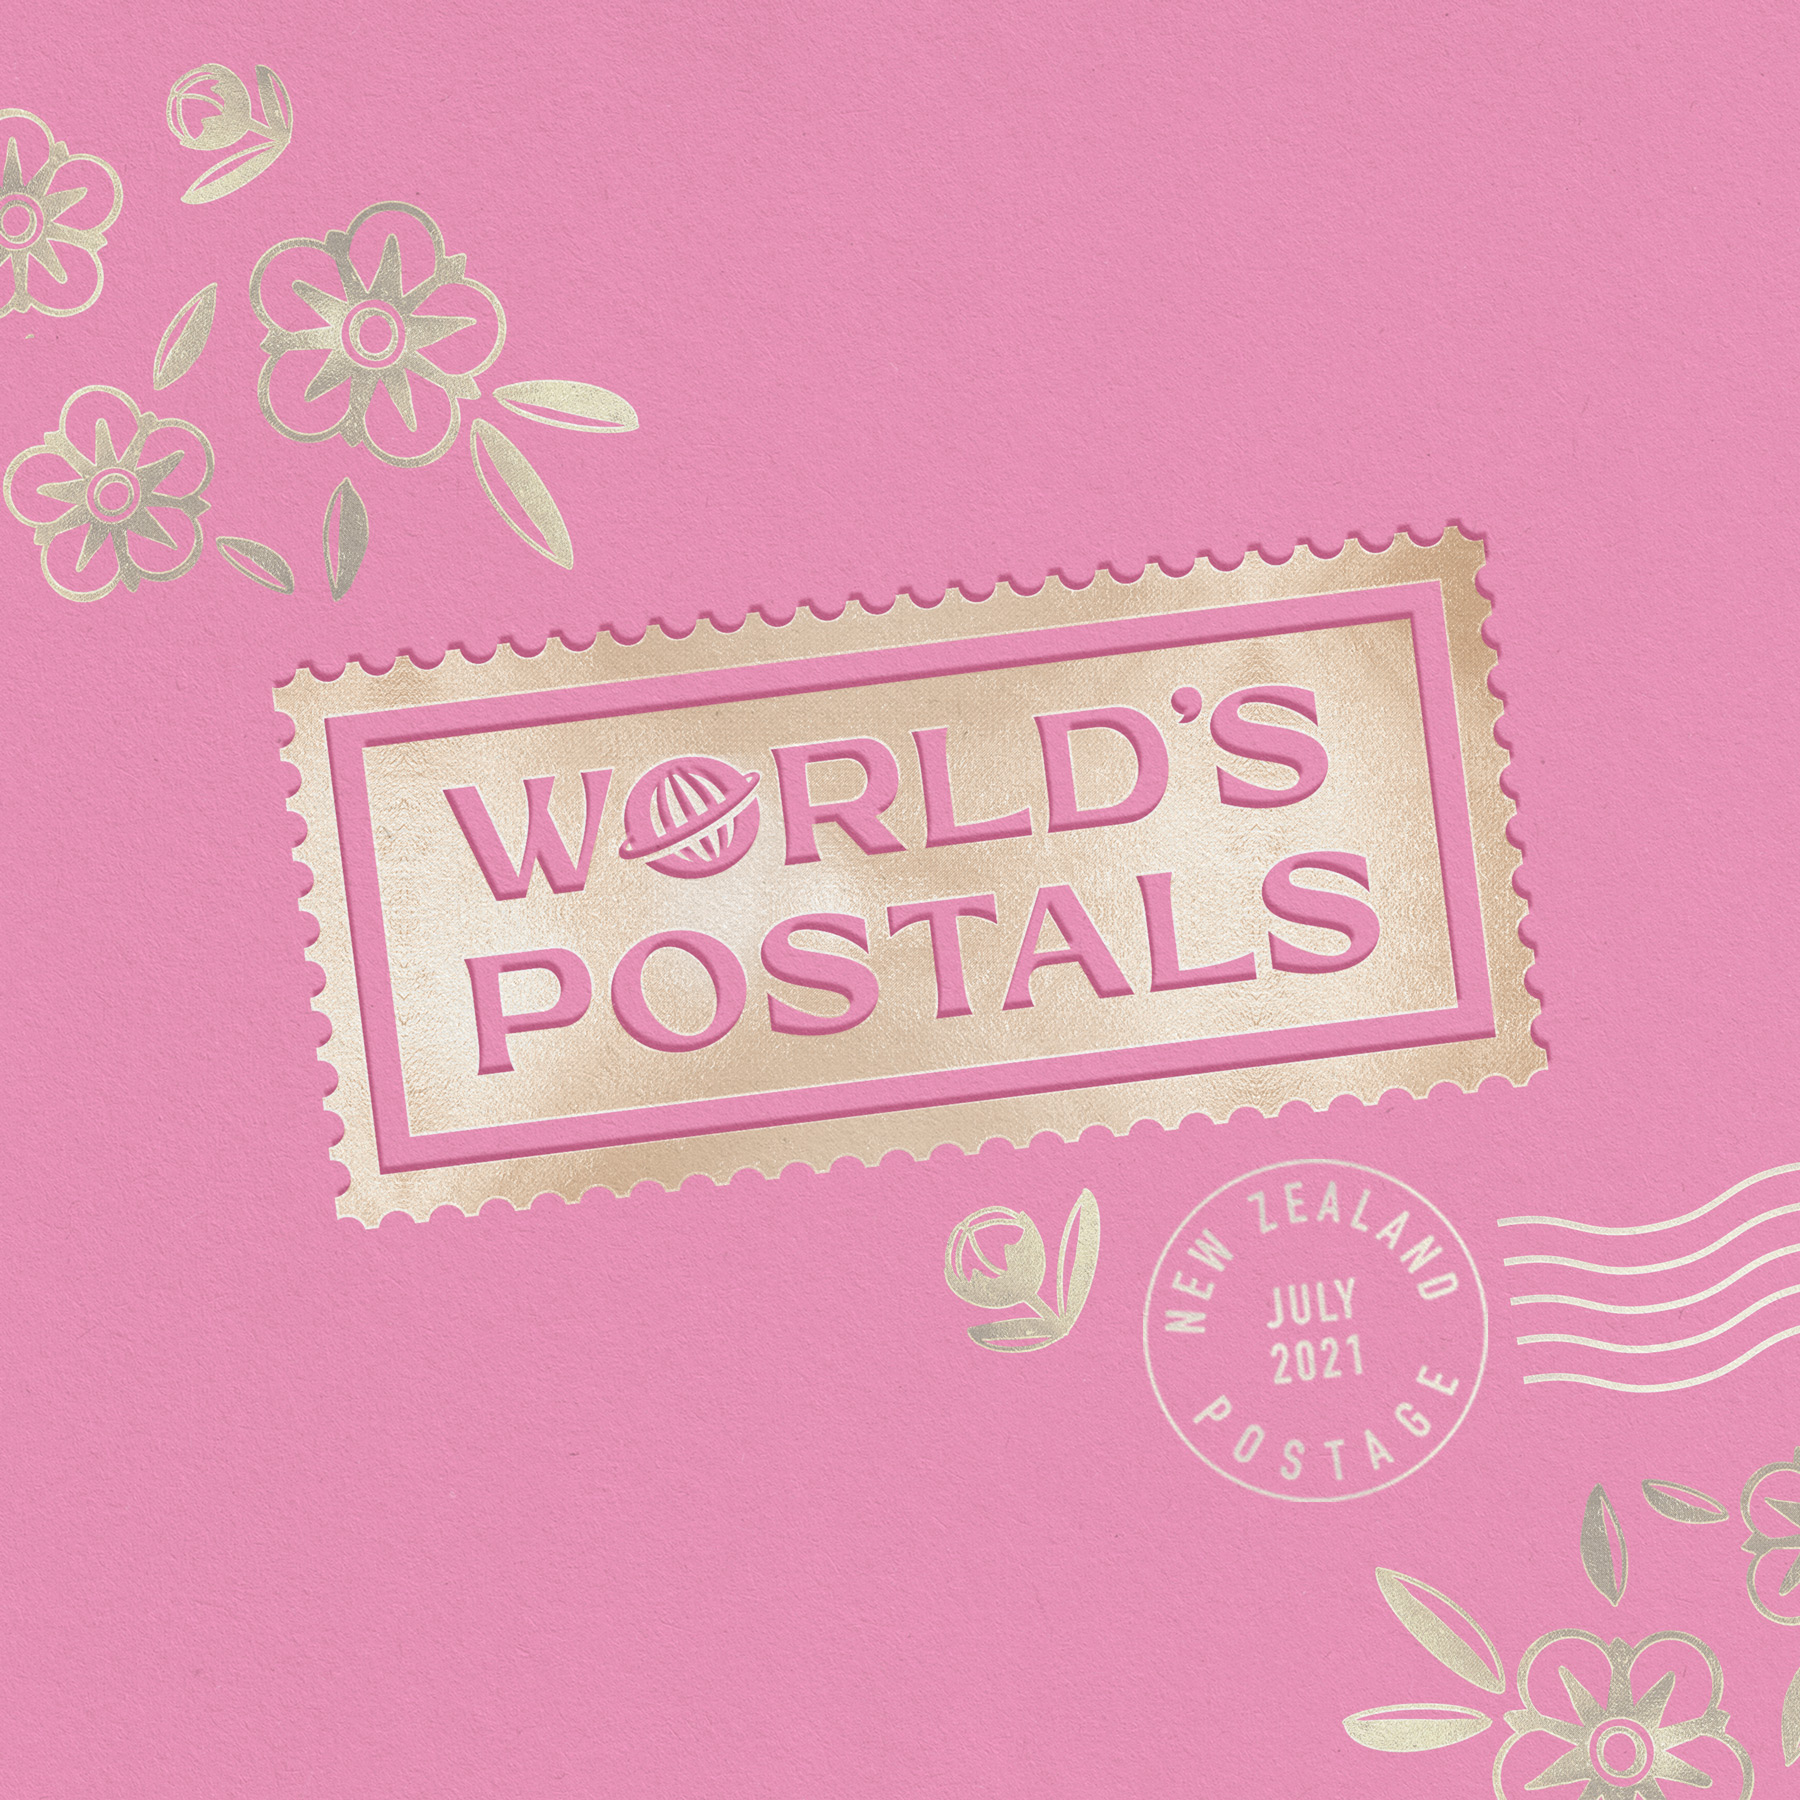 World's Postals Non Published Concept by Spasm Studio